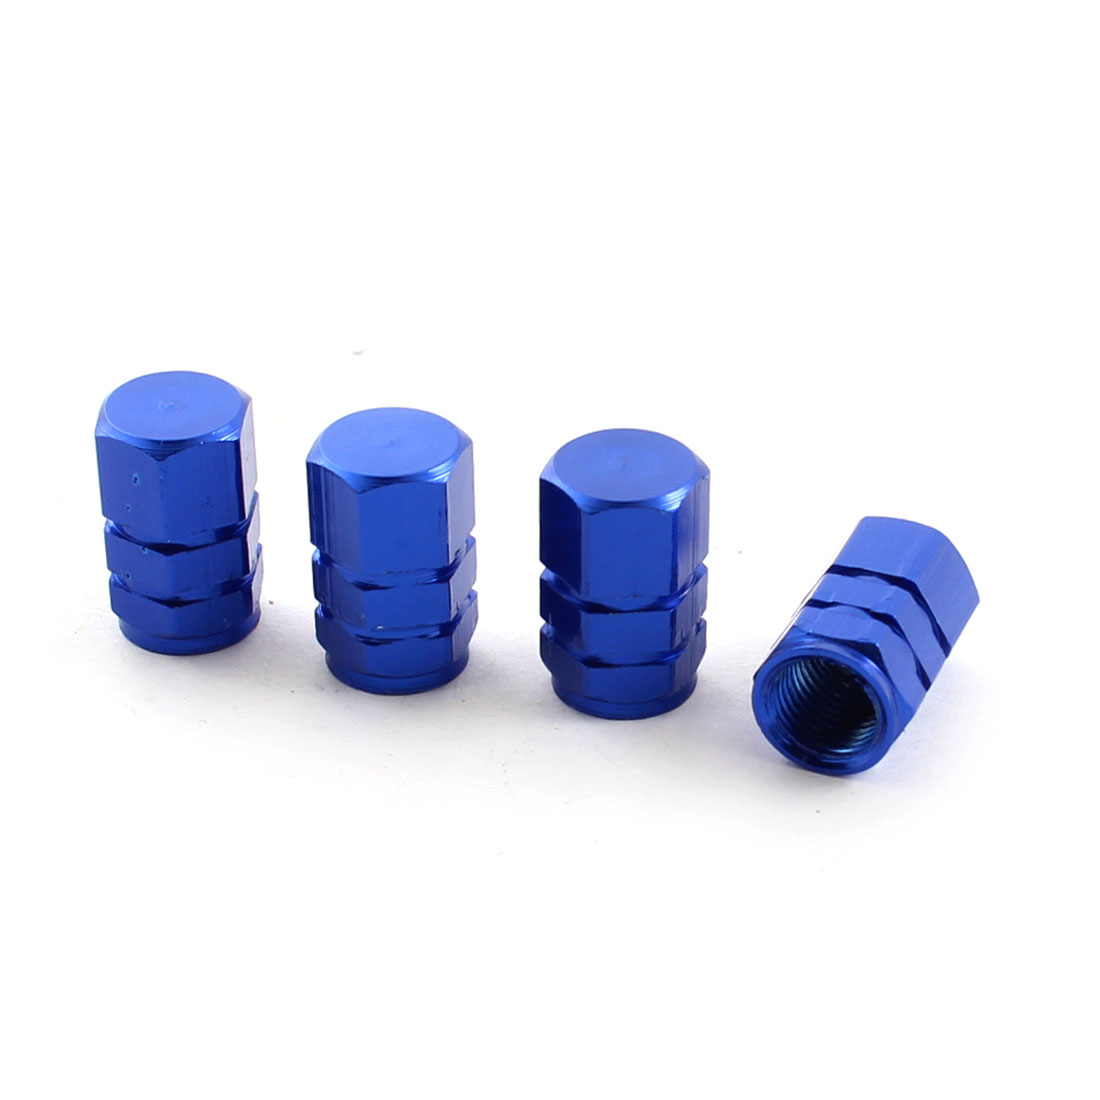 Car Auto Textured Tyre Tire Stem Protect Covers Caps Blue 4 Pieces